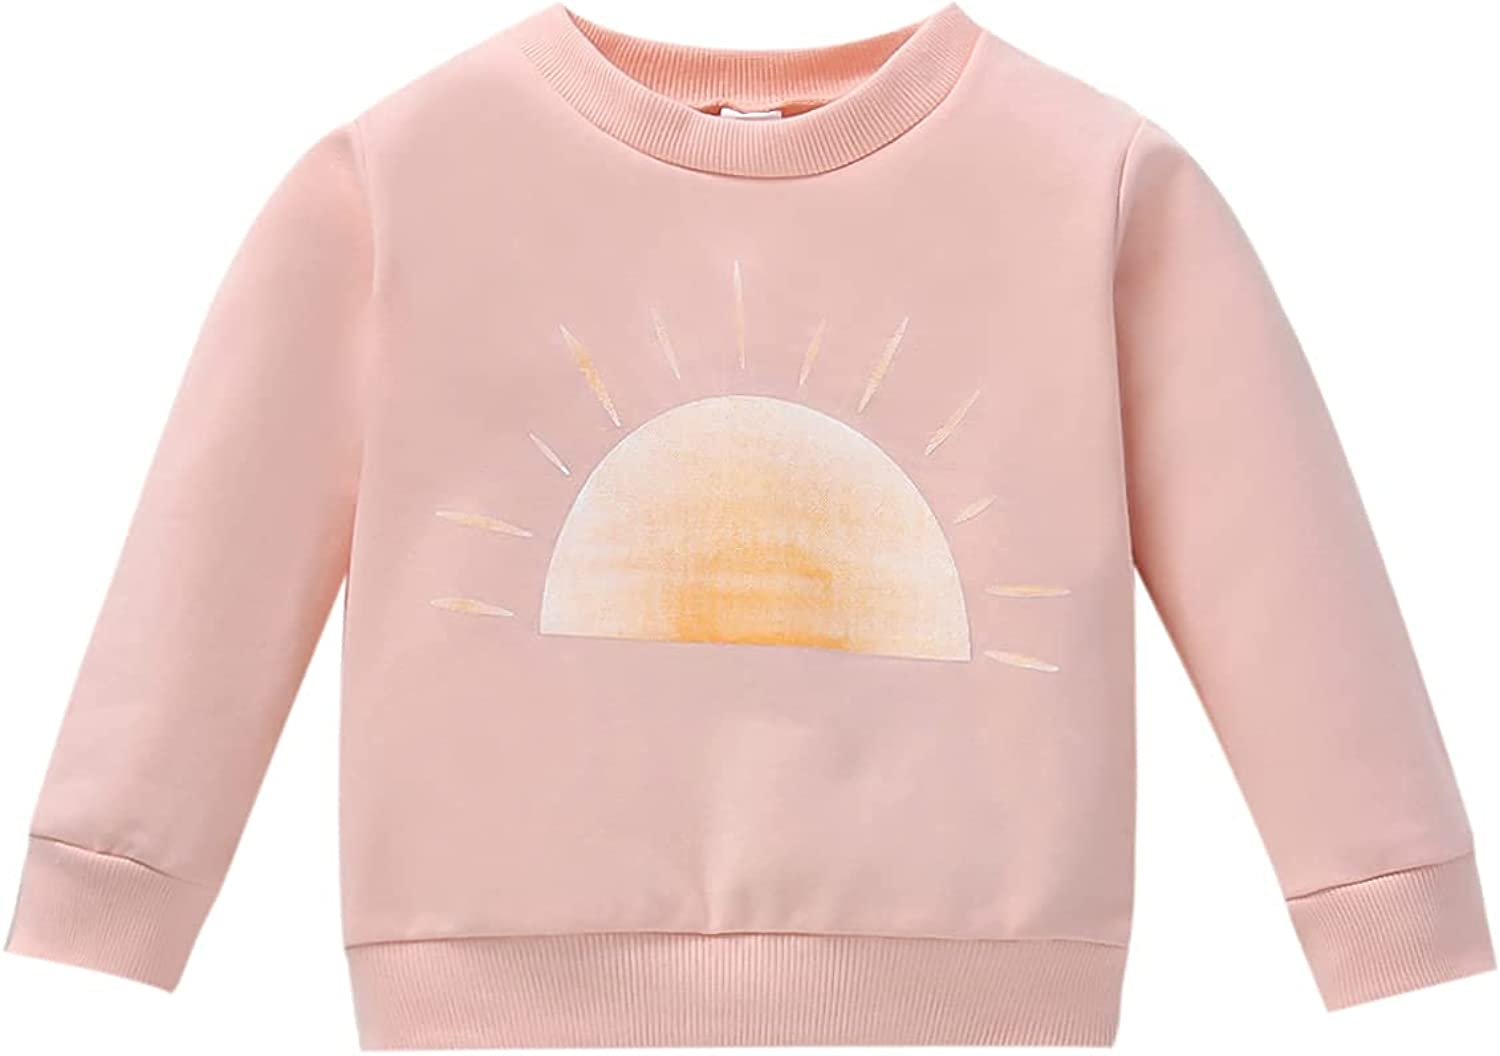 Toddler Baby Girl Boy Sweatshirt Long Sleeve Pullover Top Sweaters Sun Print Shirts Fall Winter Blouses Clothes